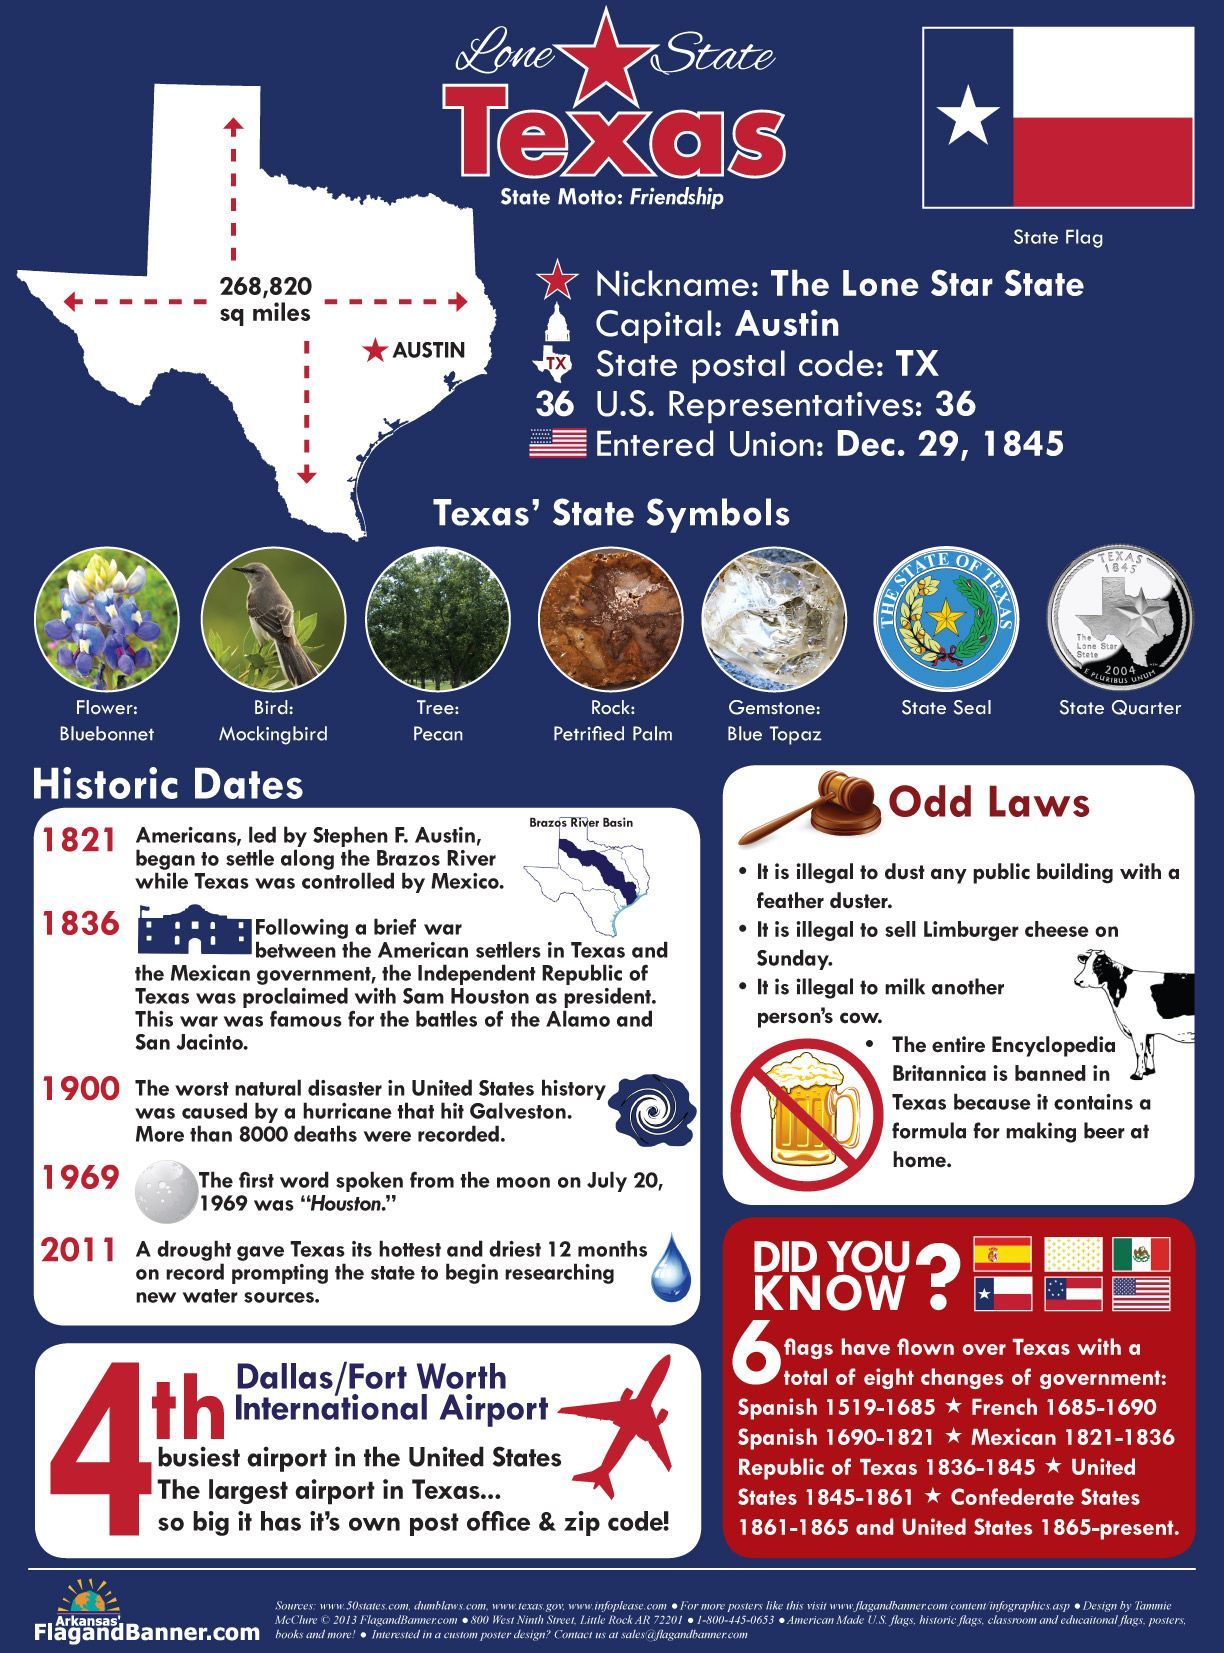 Infographic with lots of information about the Lone Star